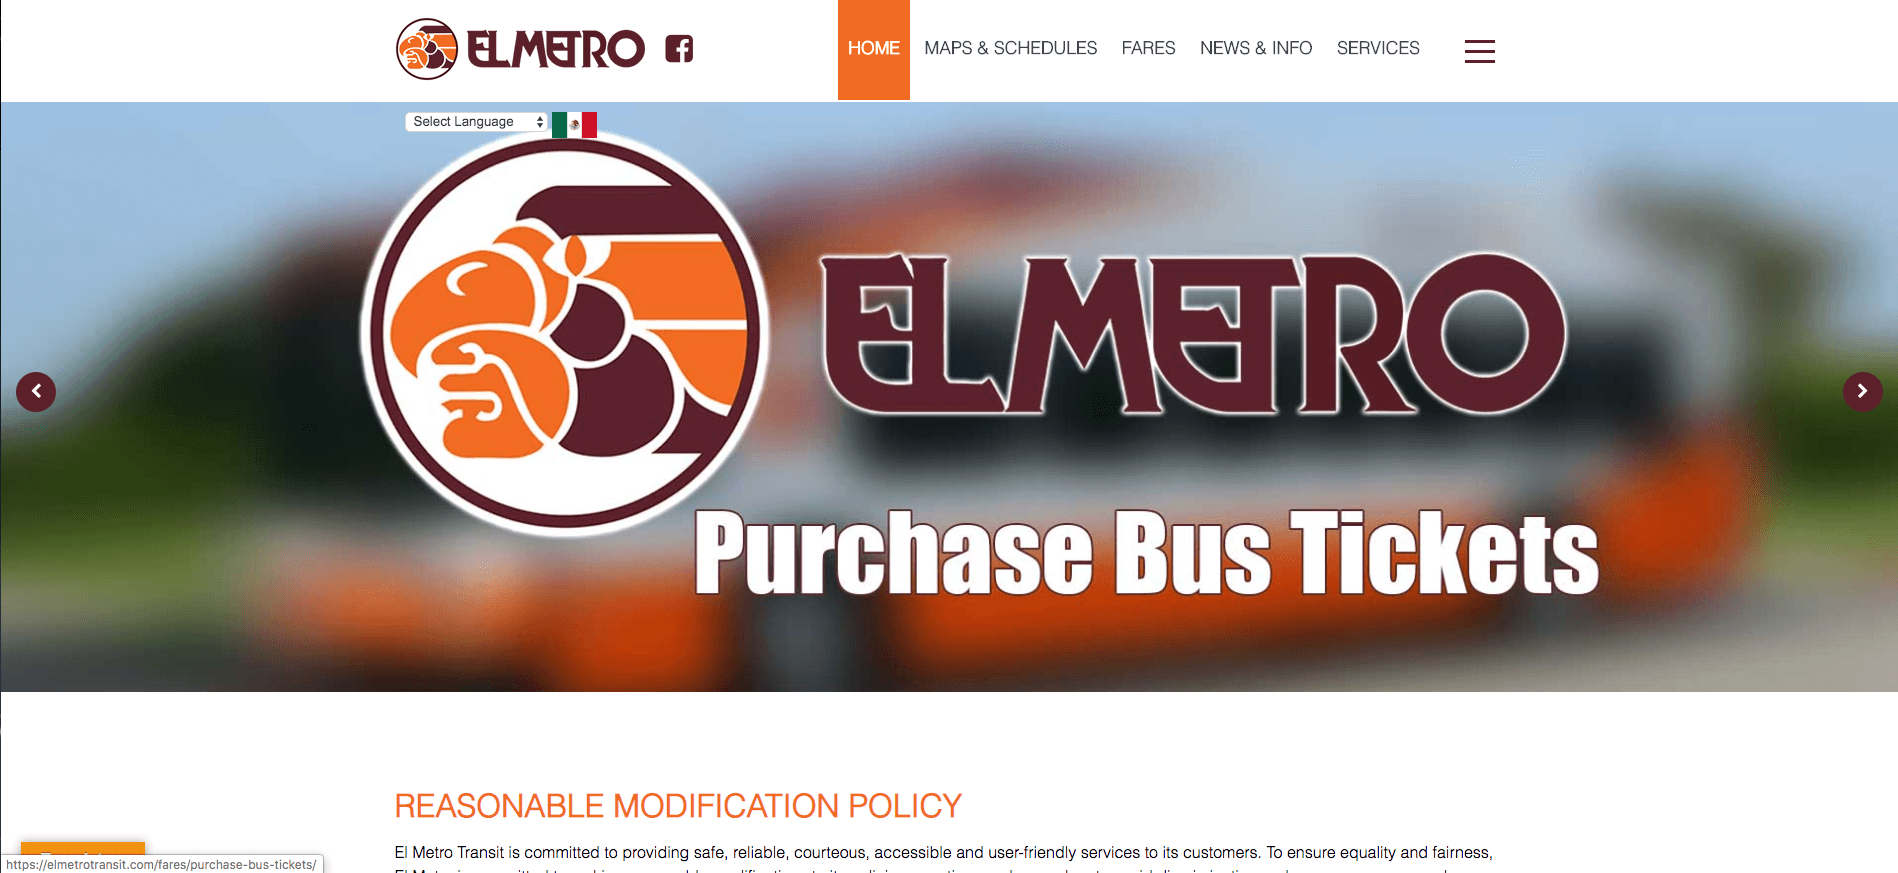 El Metro Website